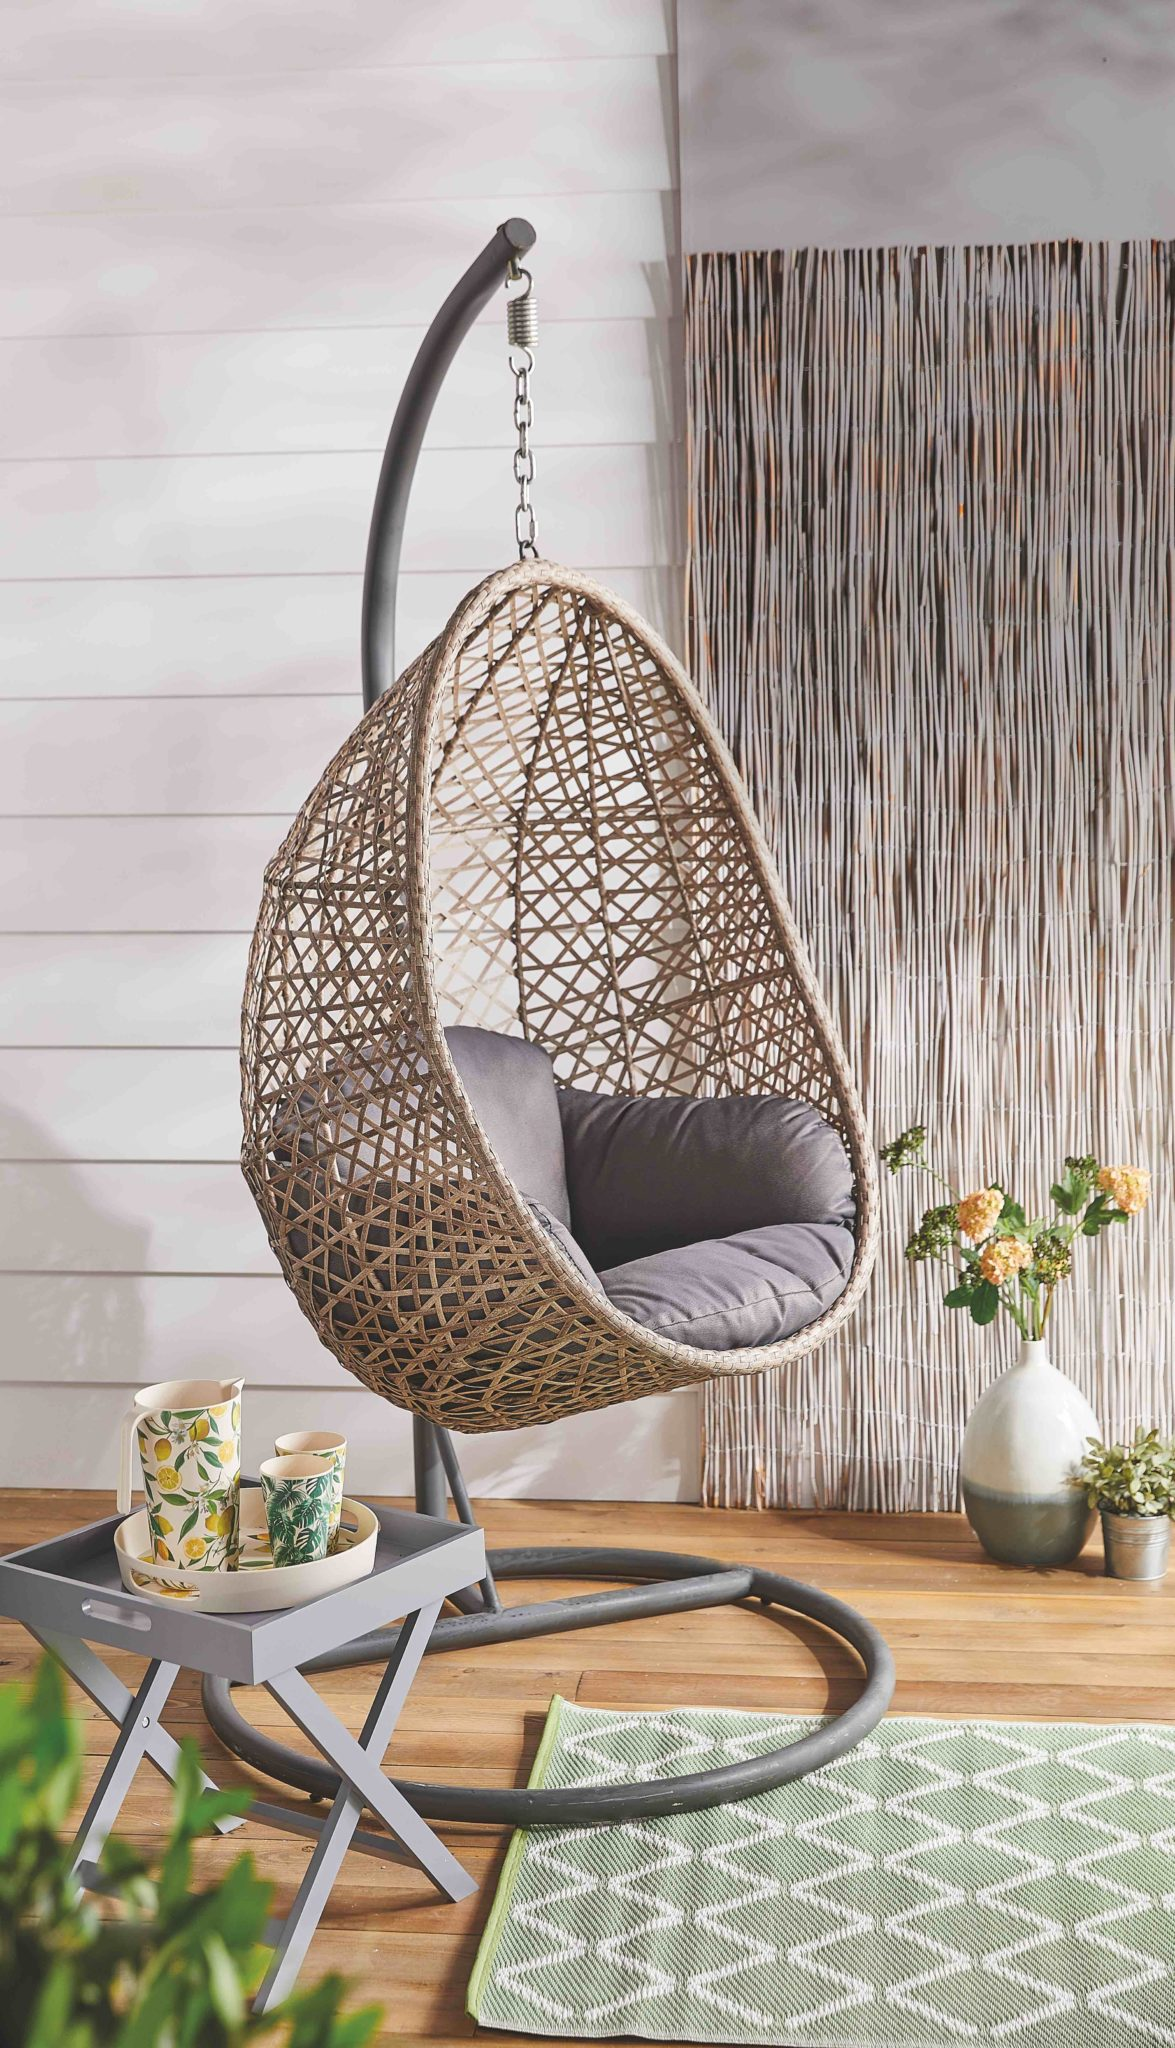 Stunning Hanging Egg Chair Coming To Aldi Www 98fm Com